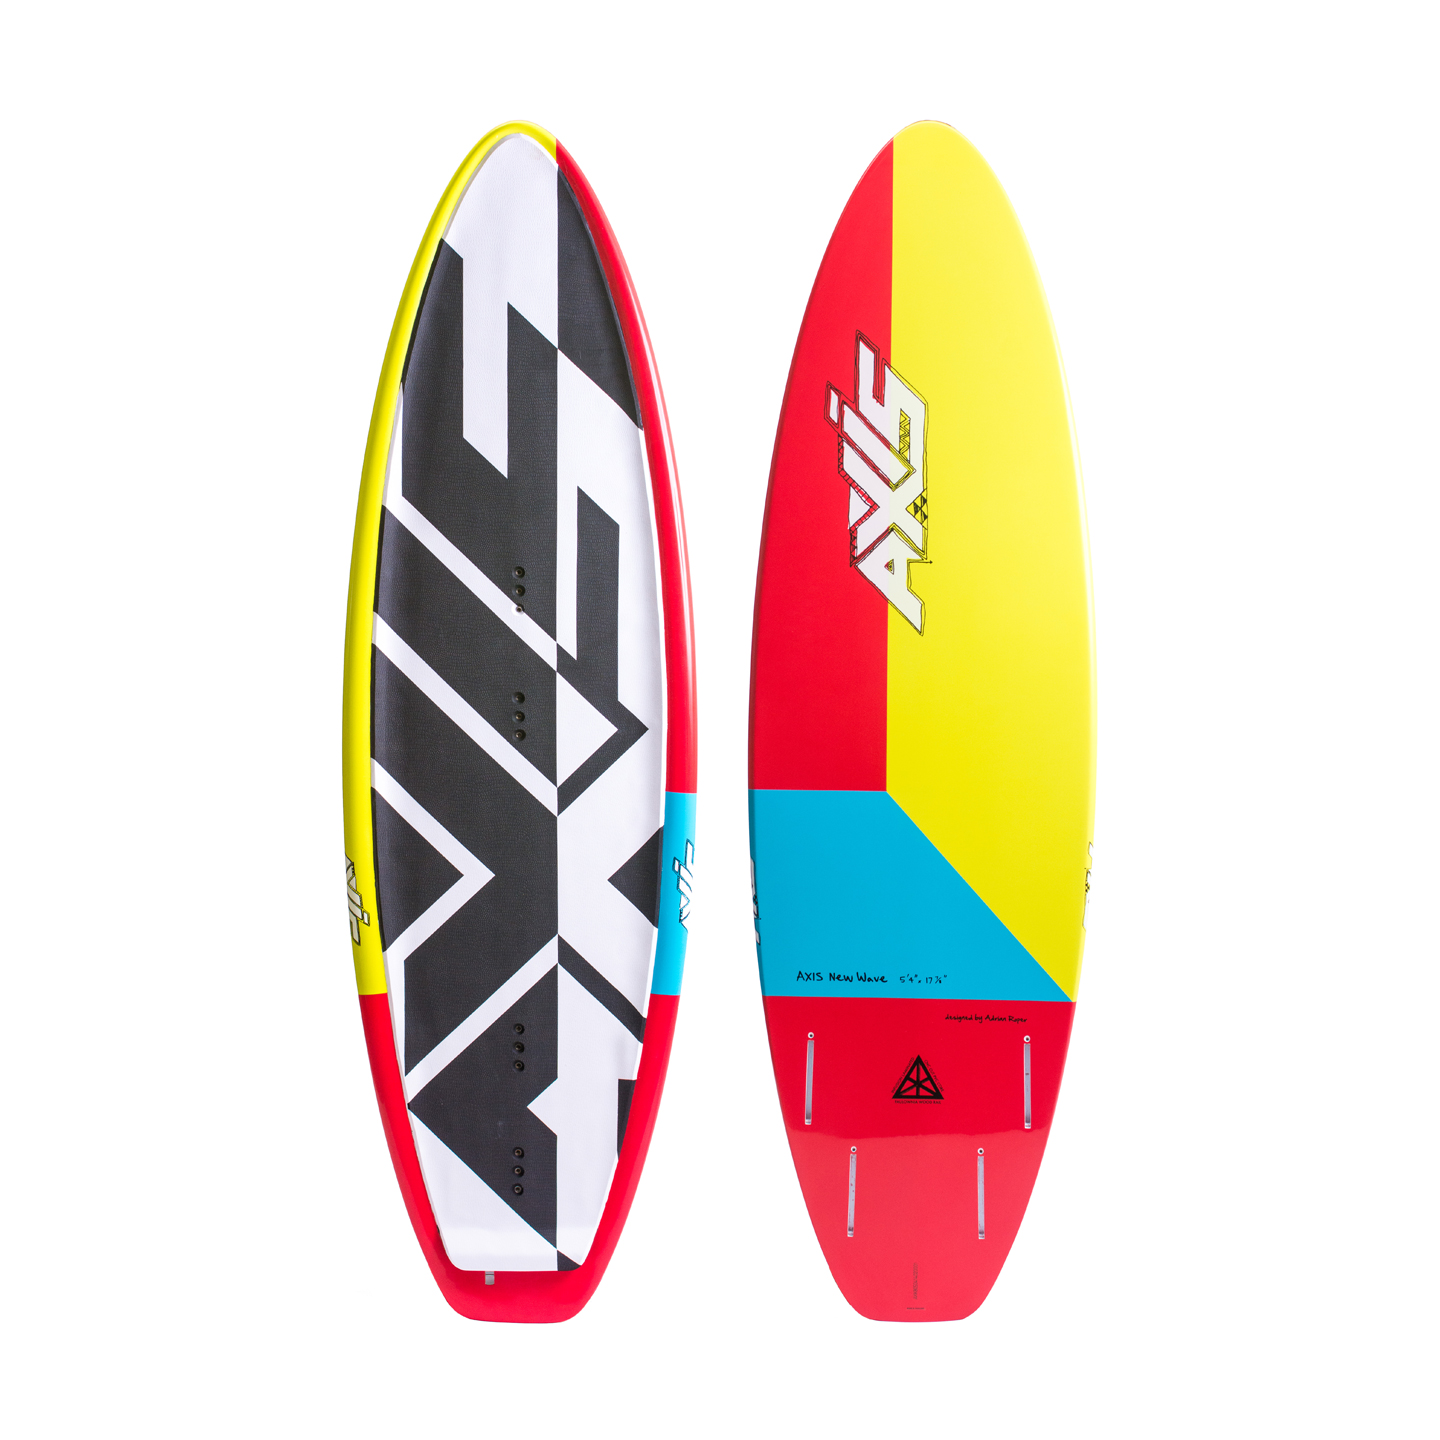 Axis Kiteboarding New Wave 2015 Kite Surfboard